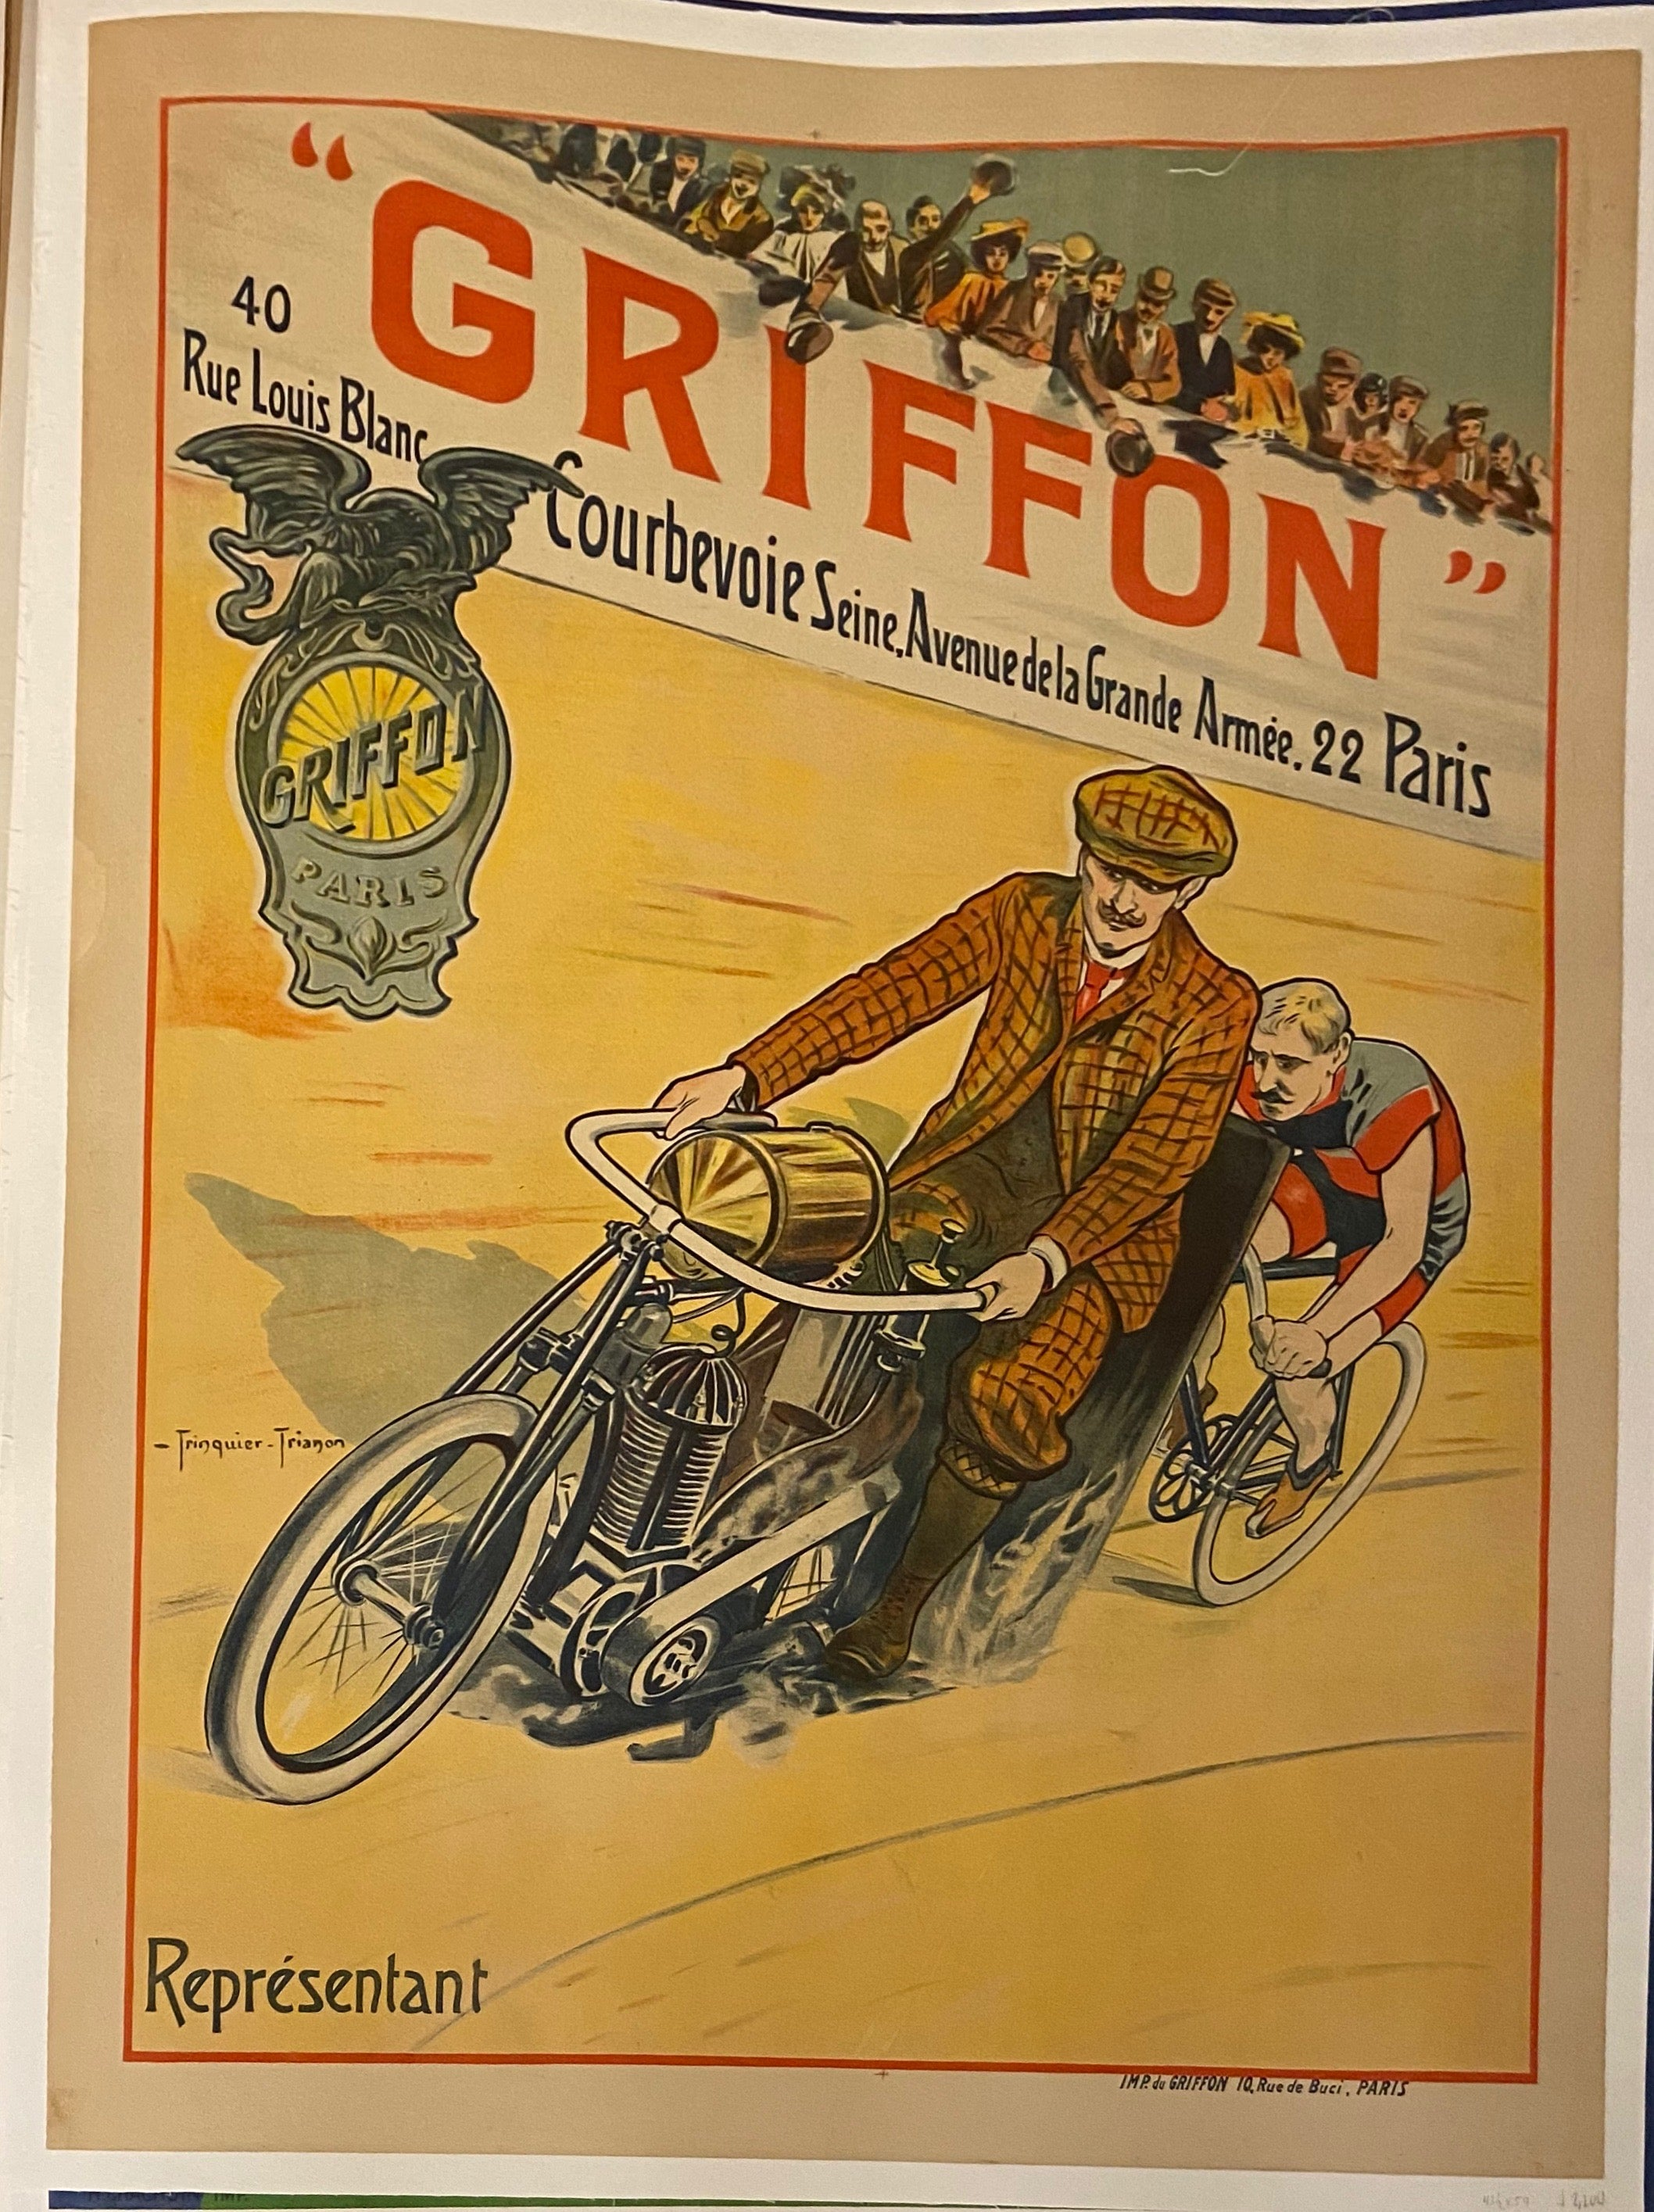 Griffon Motorcycles Vintage Poster